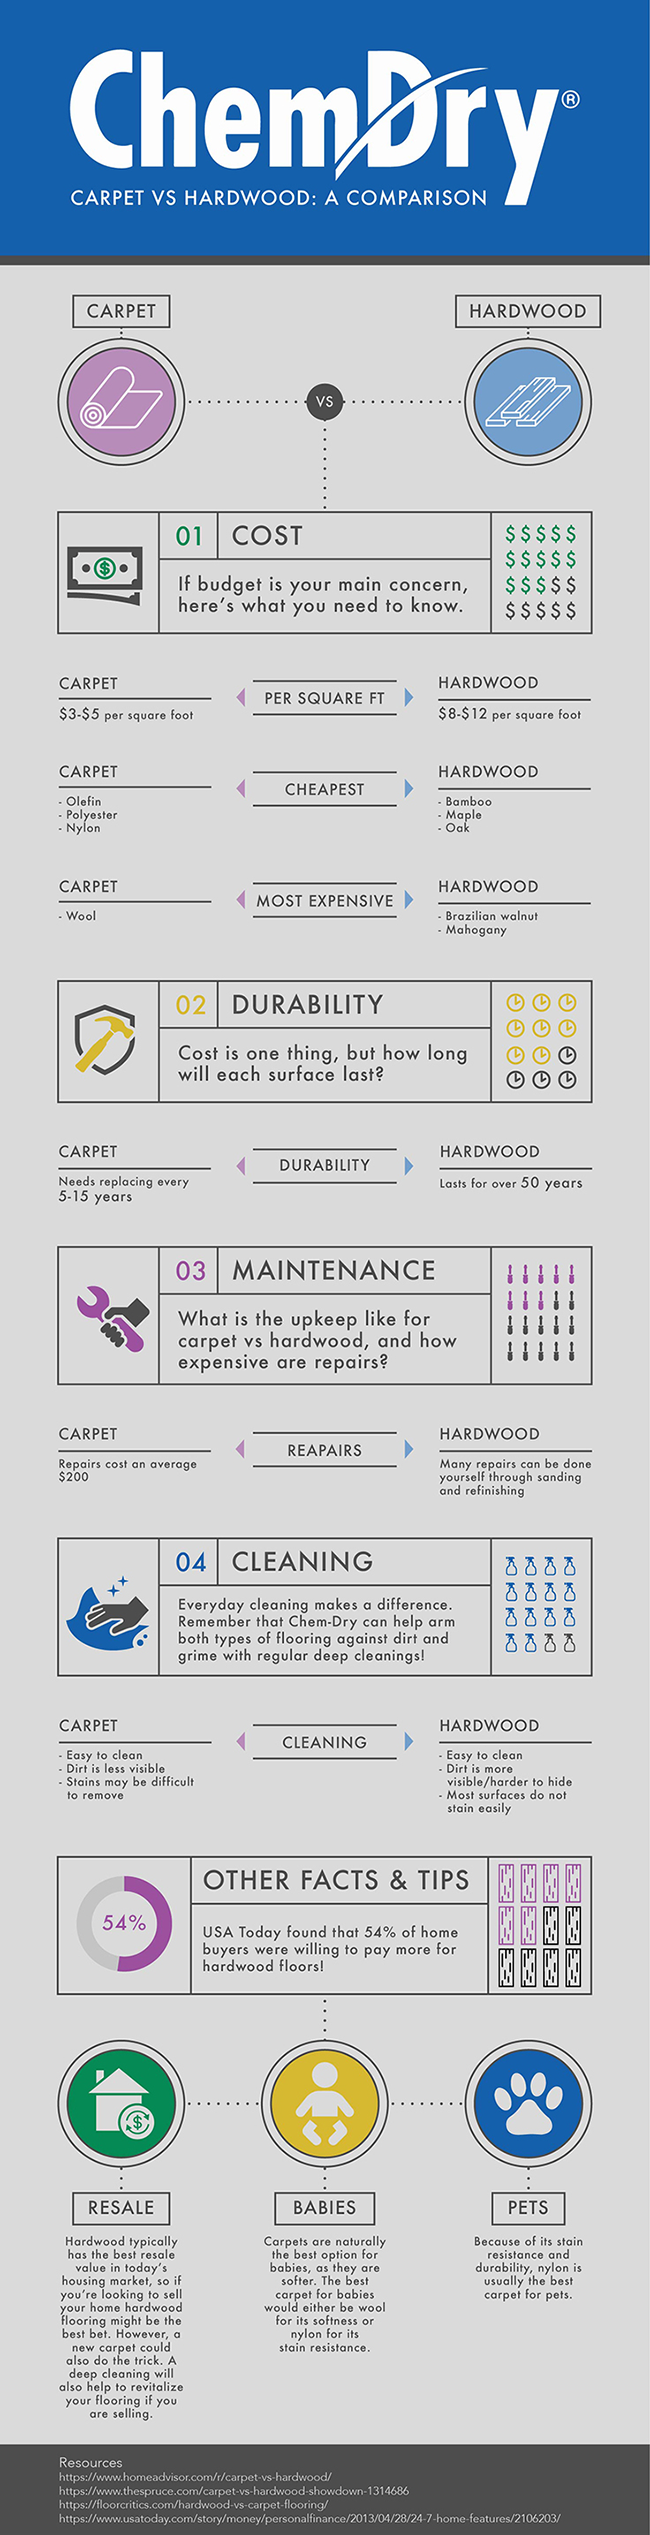 Infographic comparing carpet and hardwood flooring options by Chem-Dry